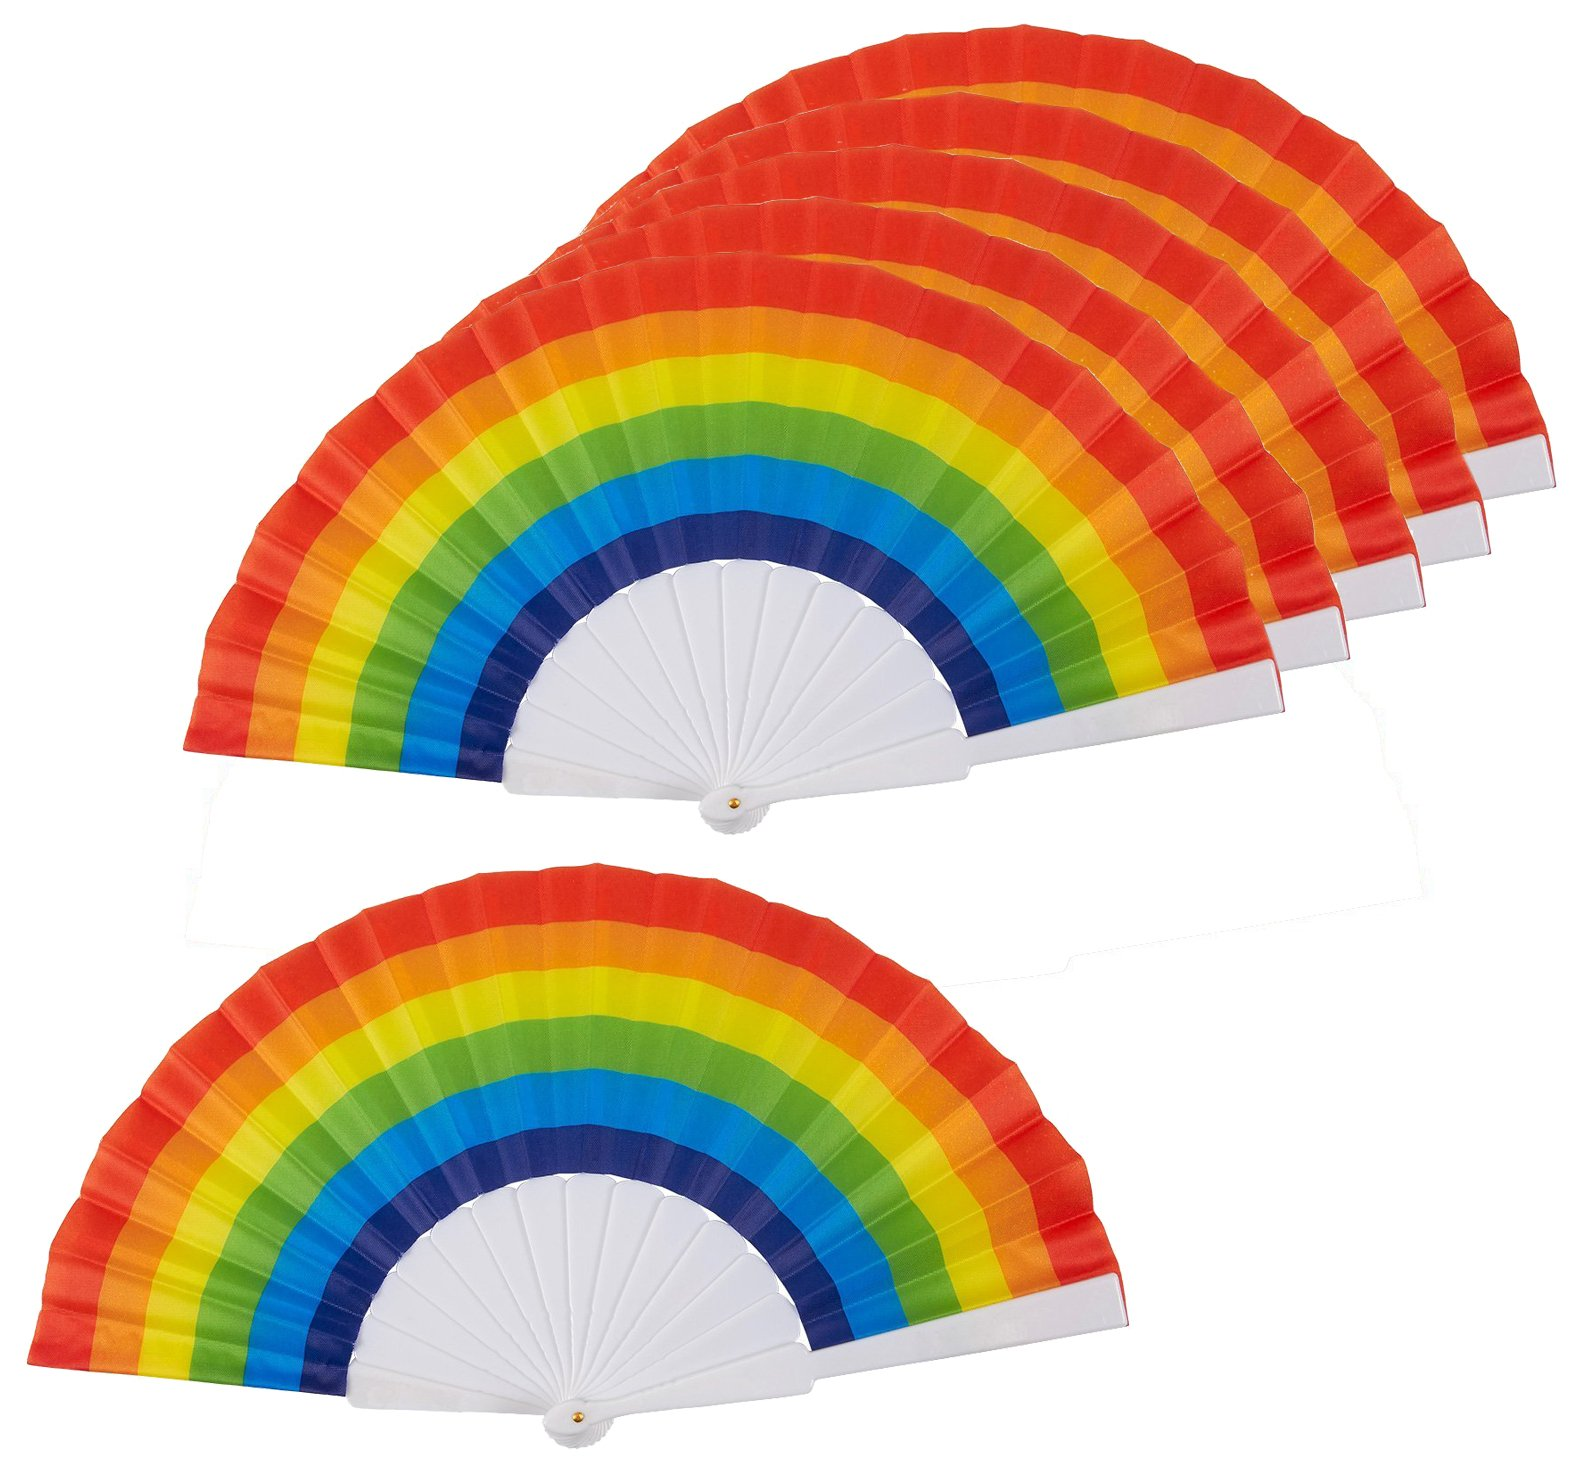 Juvale Rainbow Fans - Pack of 6 - Rainbow Party Supplies - Ideal Rainbow-Themed Parties LGBT Gay Pride Events, 9.25 x 1.25 x 0.75 inches